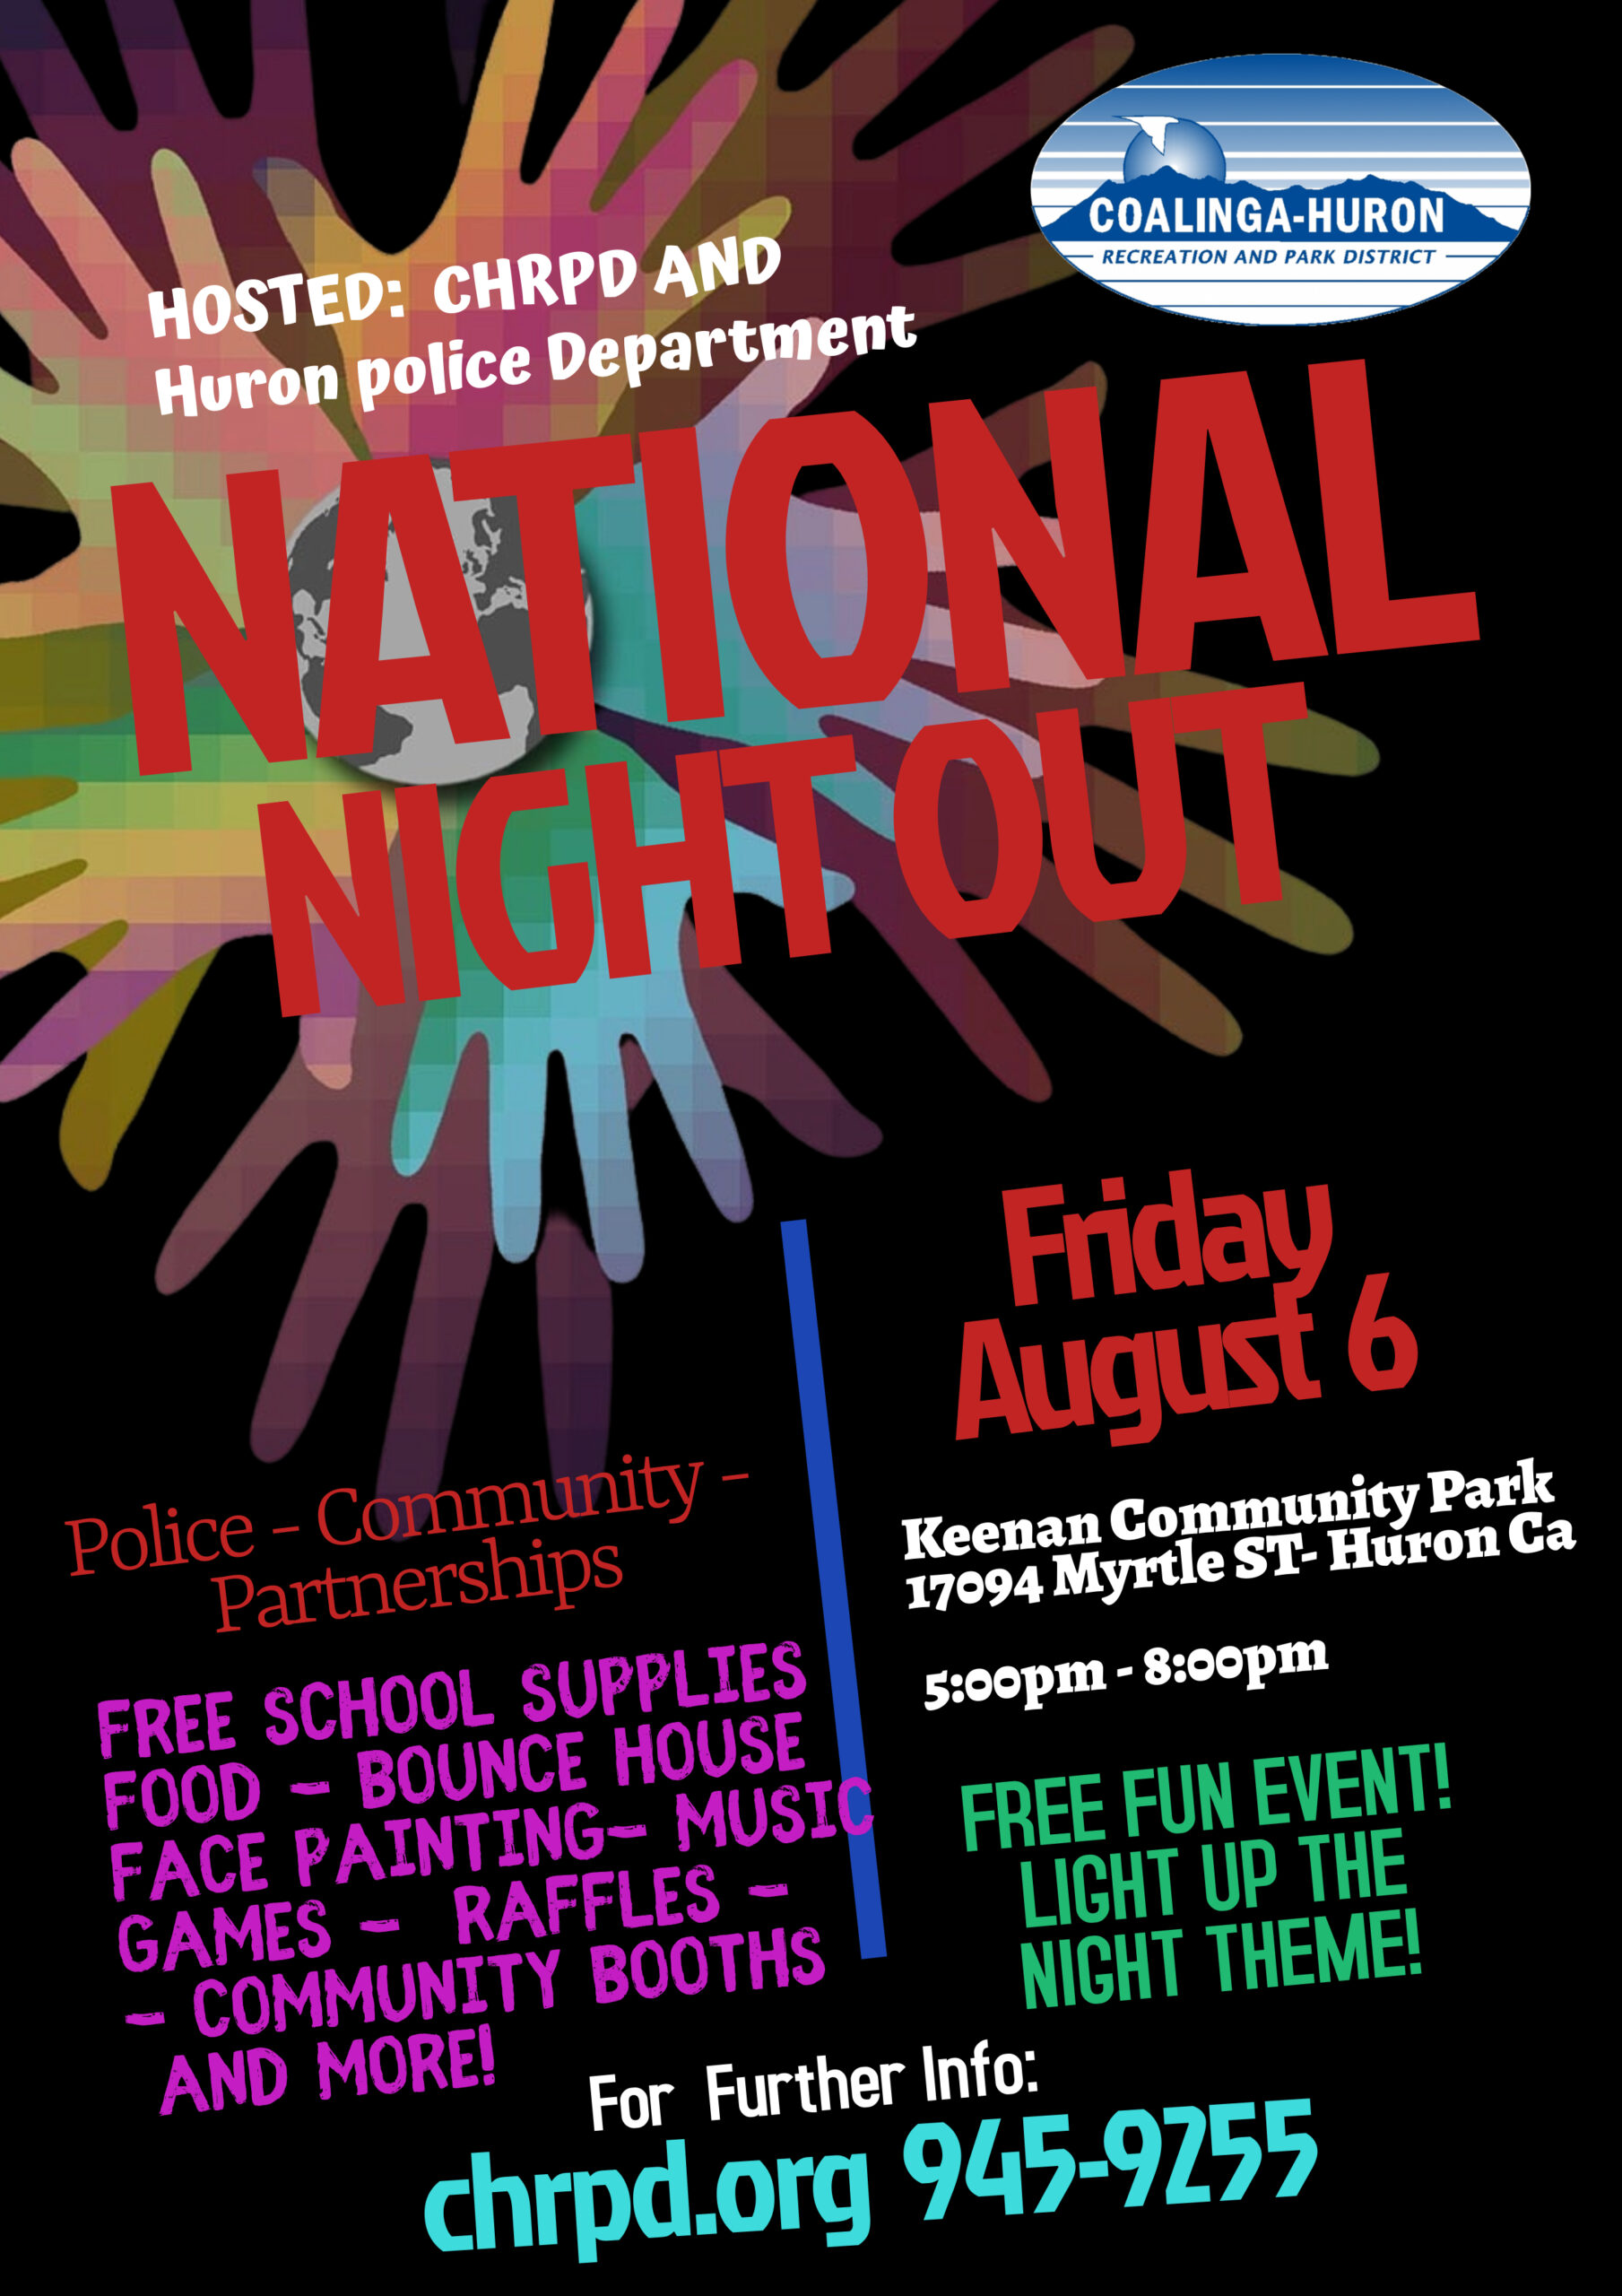 Huron National Night Out Flyer